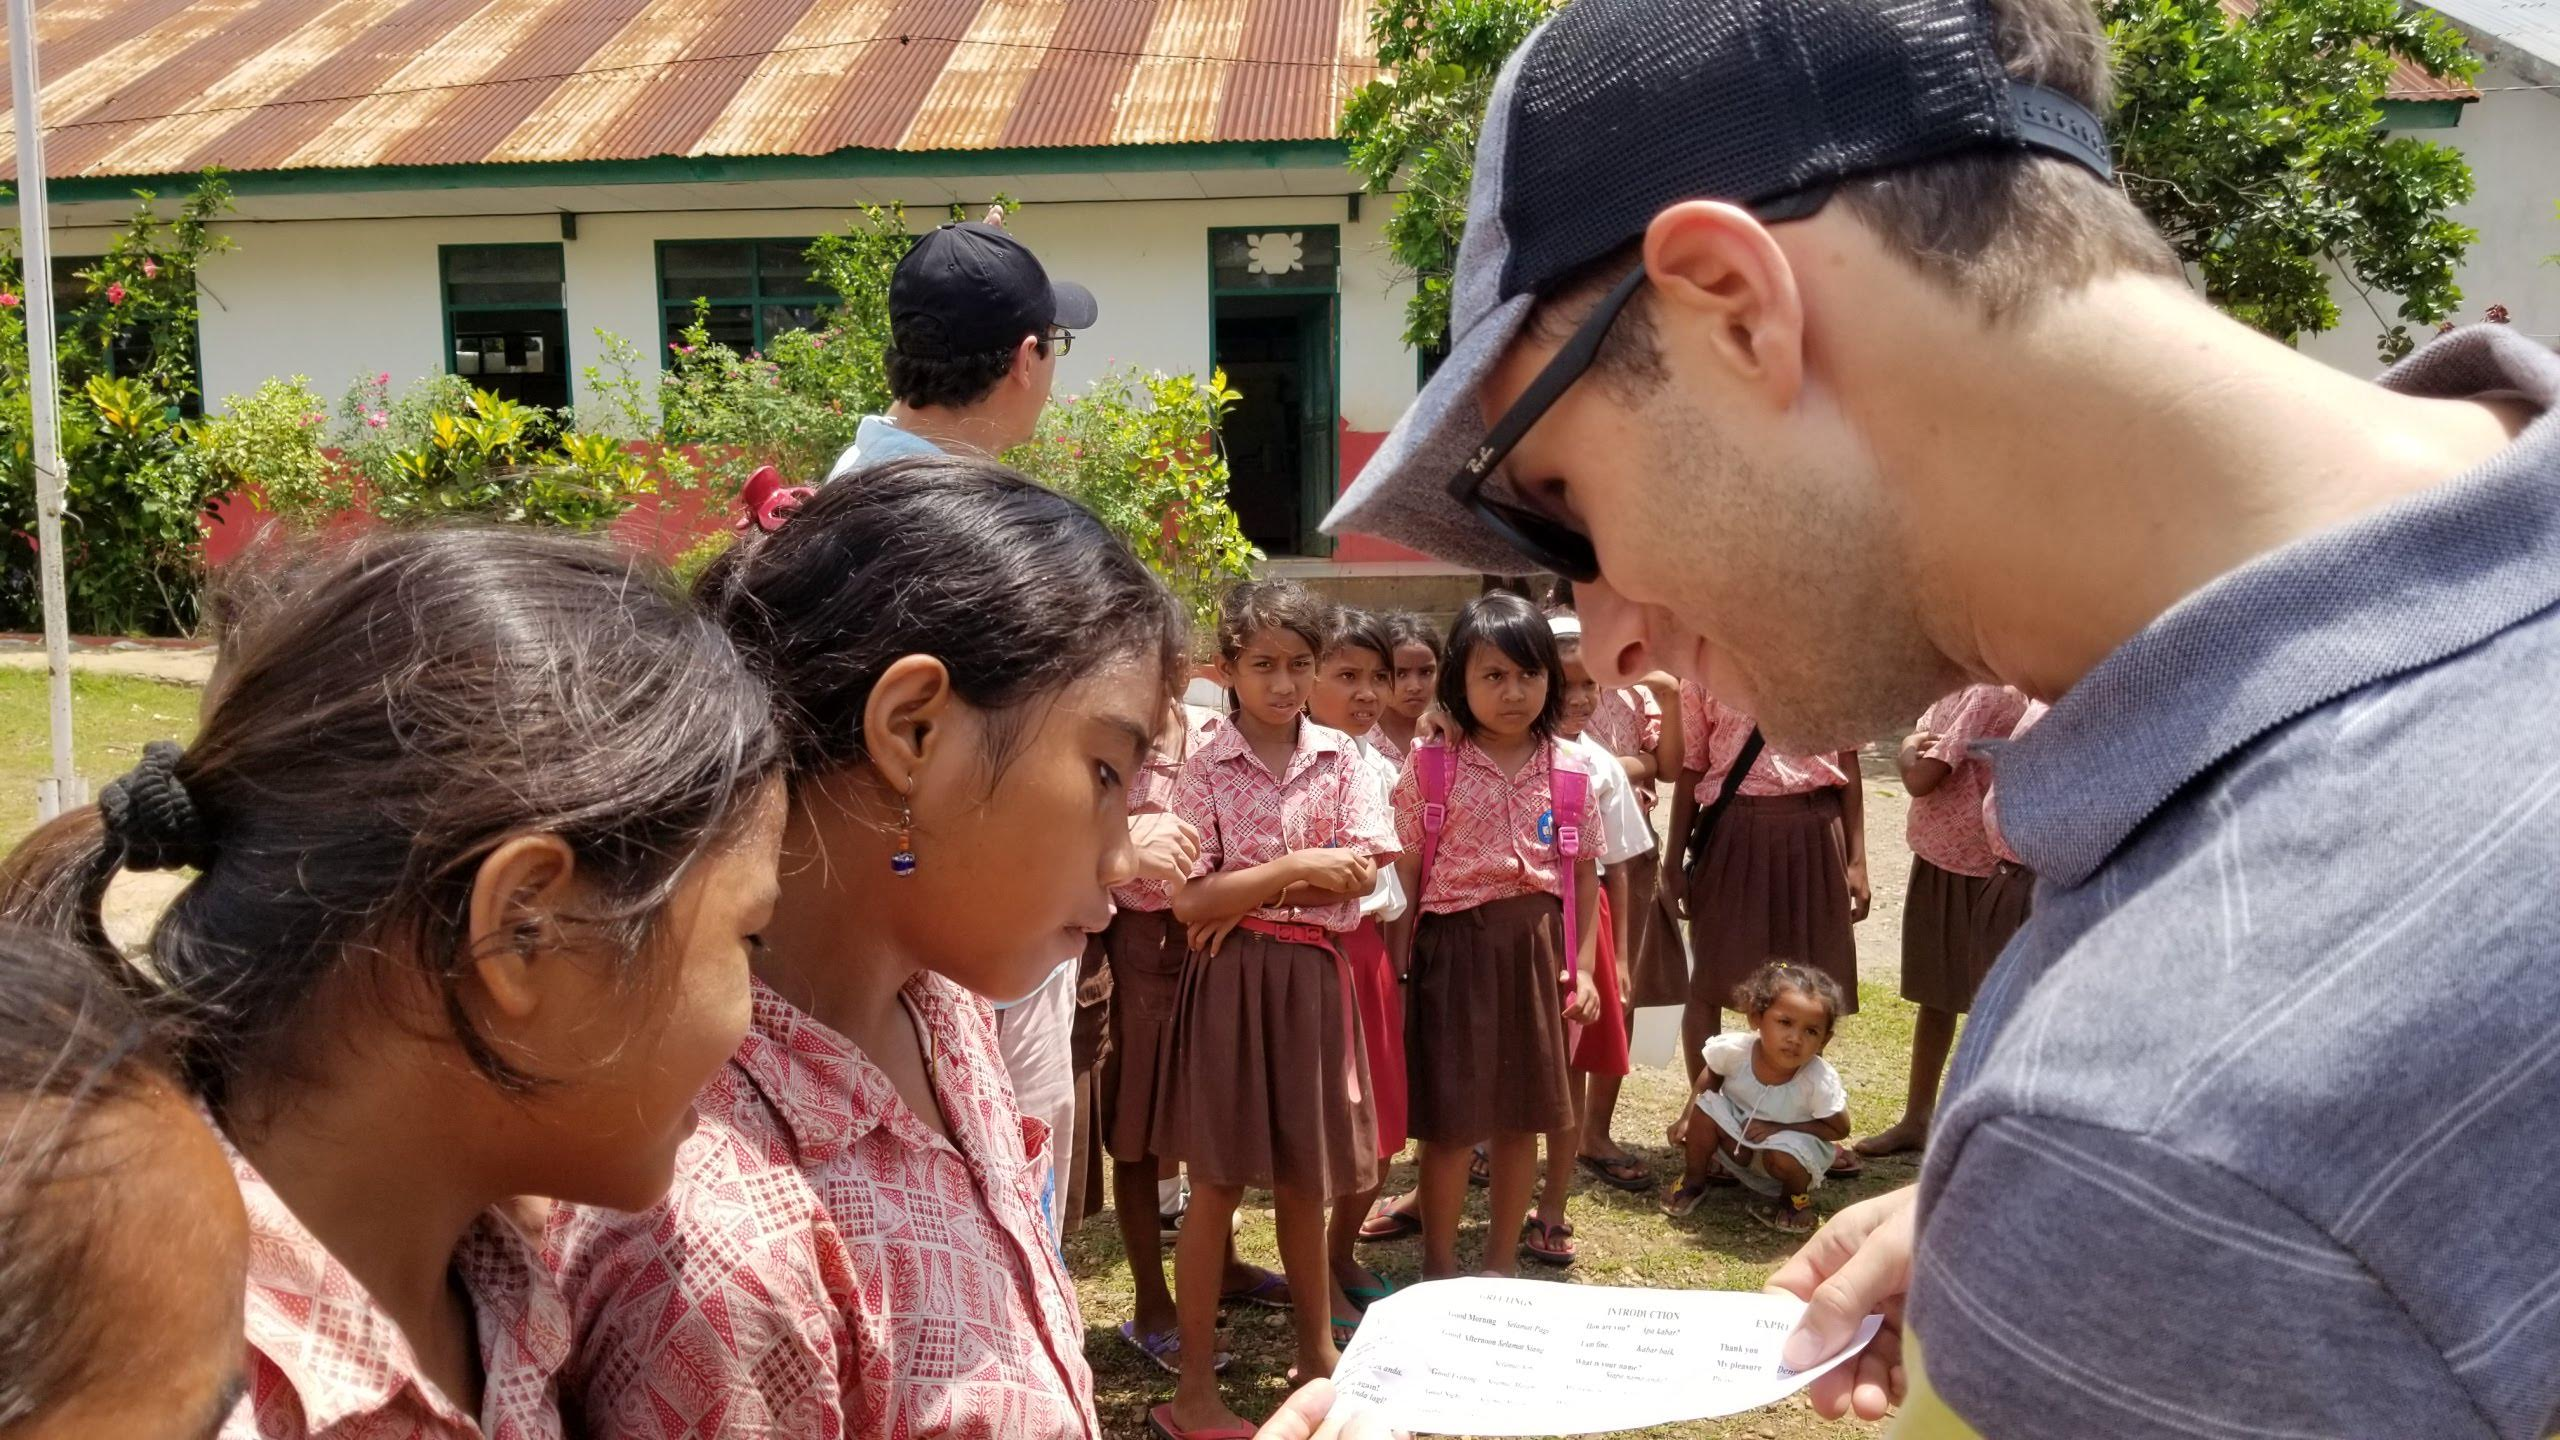 Jason chatting with the kids in English and Bahasa